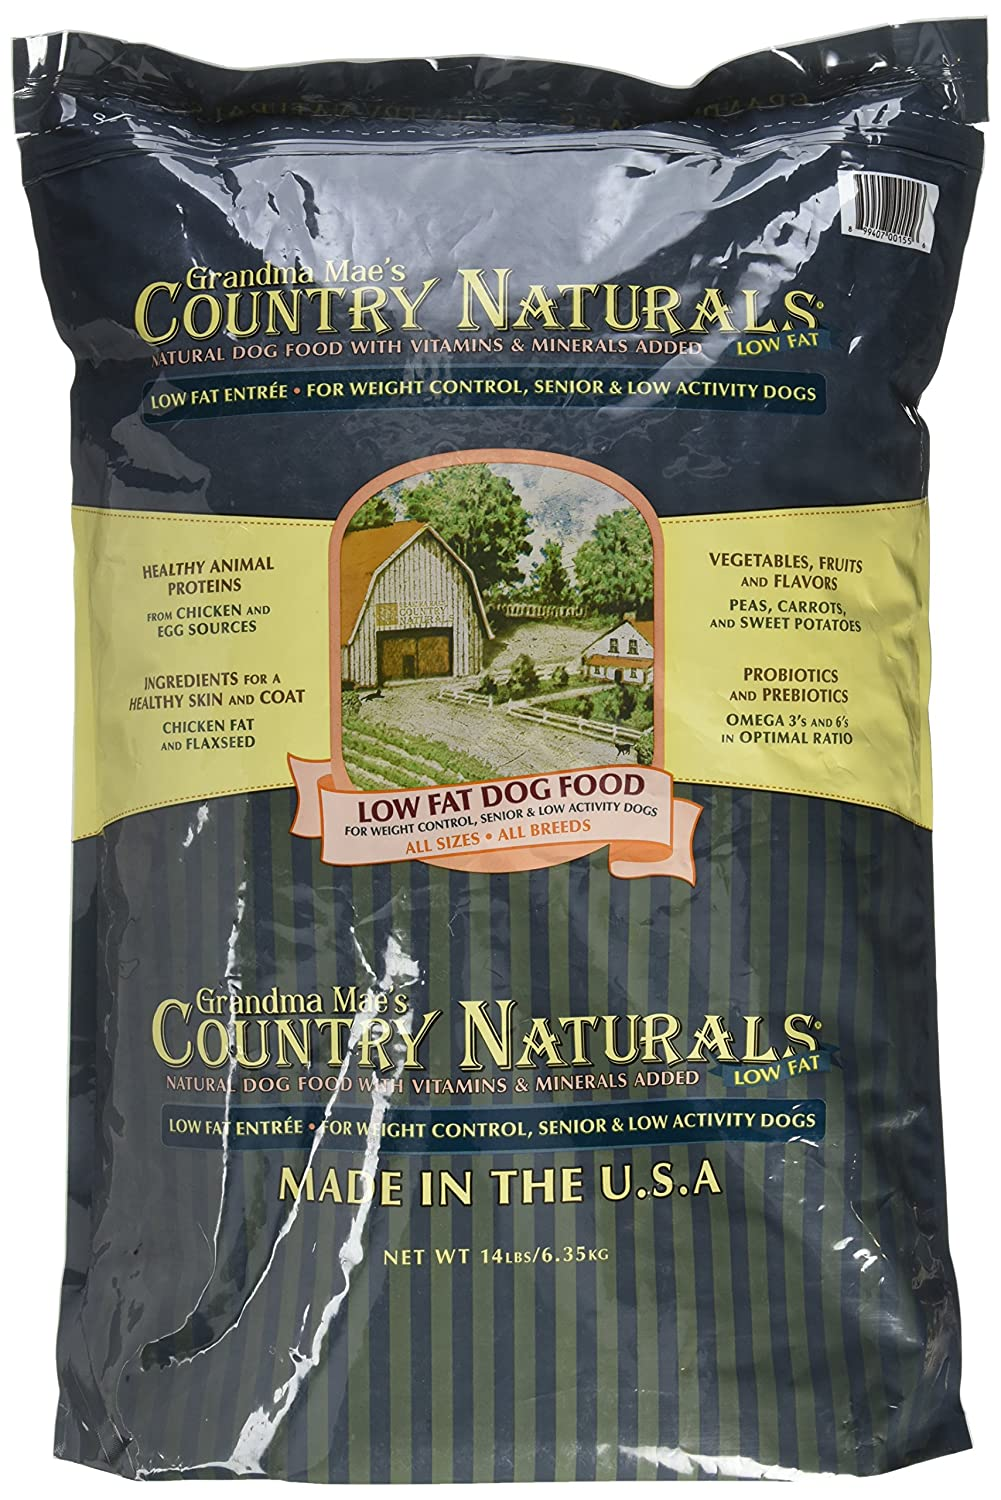 Grandma Mae'S 79700155 14 Lb Country Naturals Low Fat, One Size